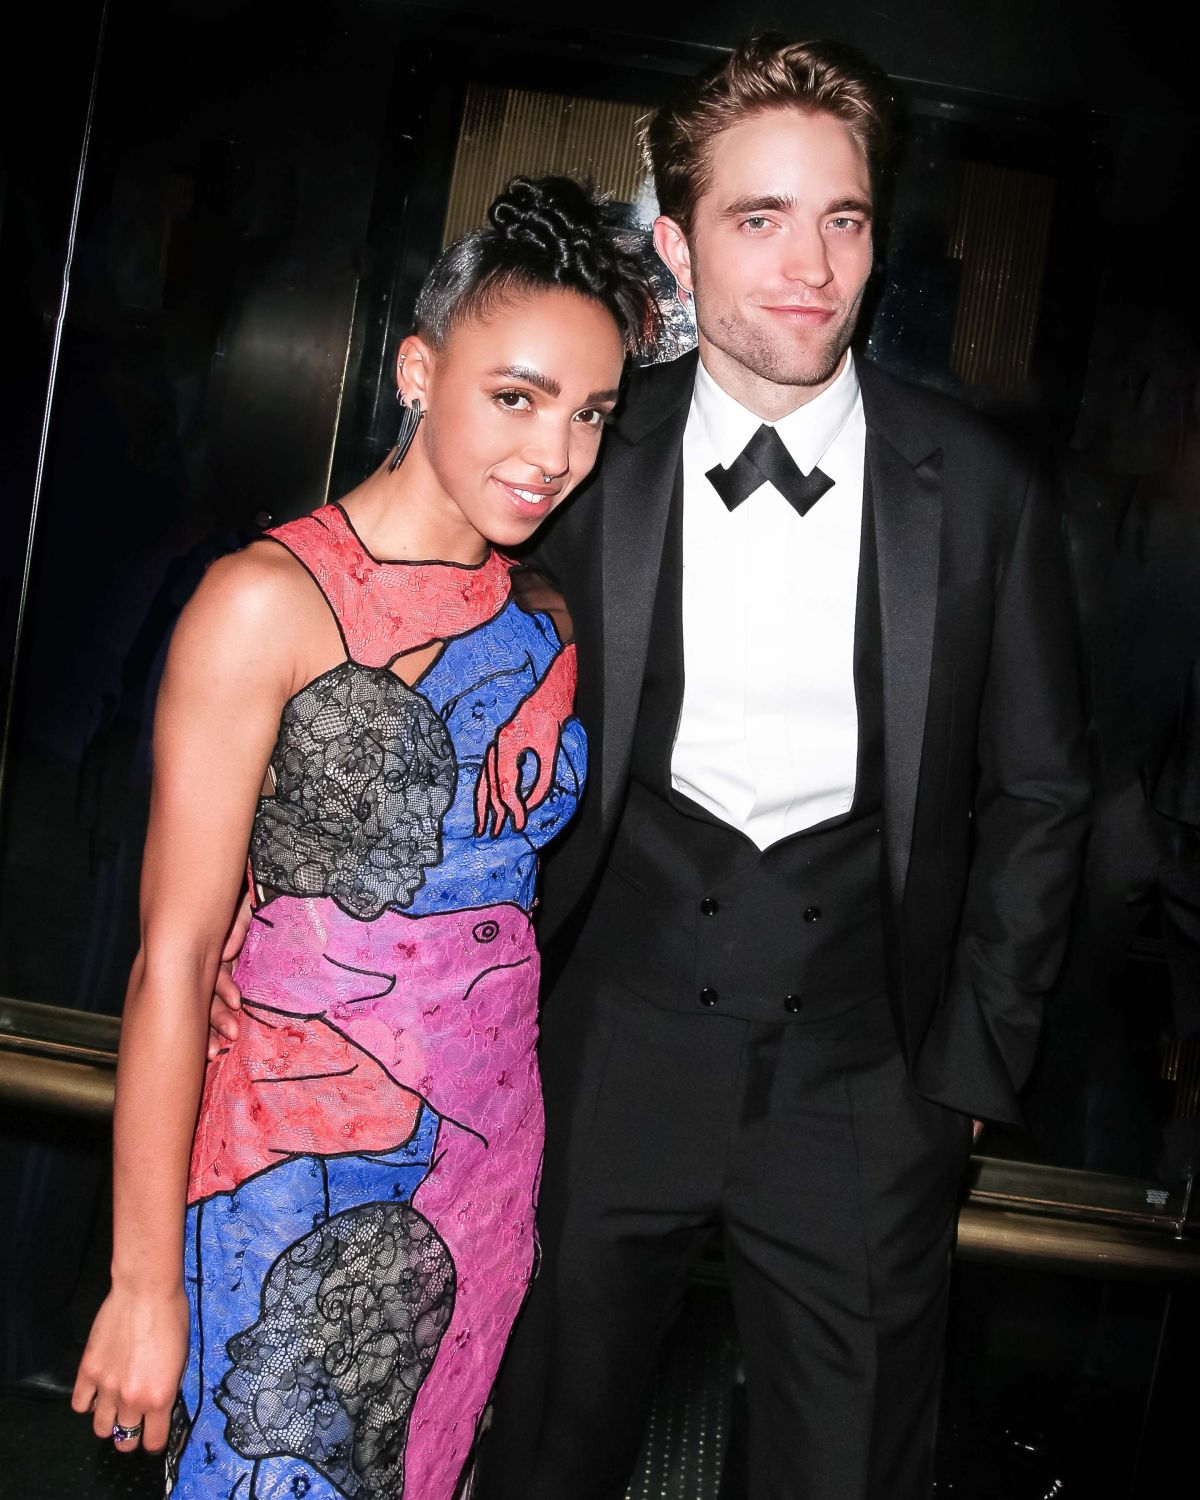 FKA TWIGS and Robbert Pattison at Met Gala After-party in New York 05/02/2016